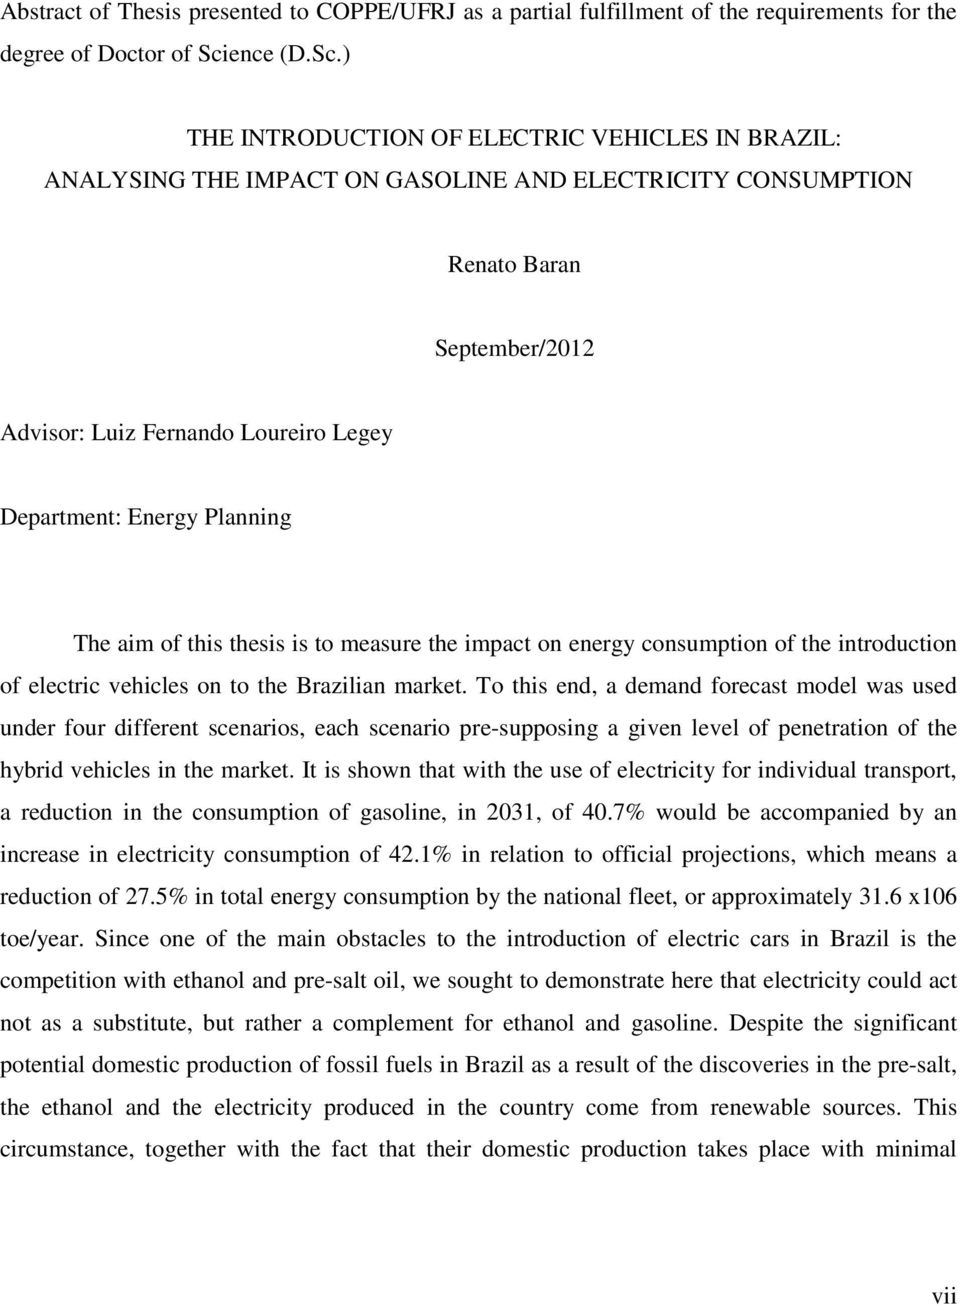 ) THE INTRODUCTION OF ELECTRIC VEHICLES IN BRAZIL: ANALYSING THE IMPACT ON GASOLINE AND ELECTRICITY CONSUMPTION Renato Baran September/2012 Advisor: Luiz Fernando Loureiro Legey Department: Energy